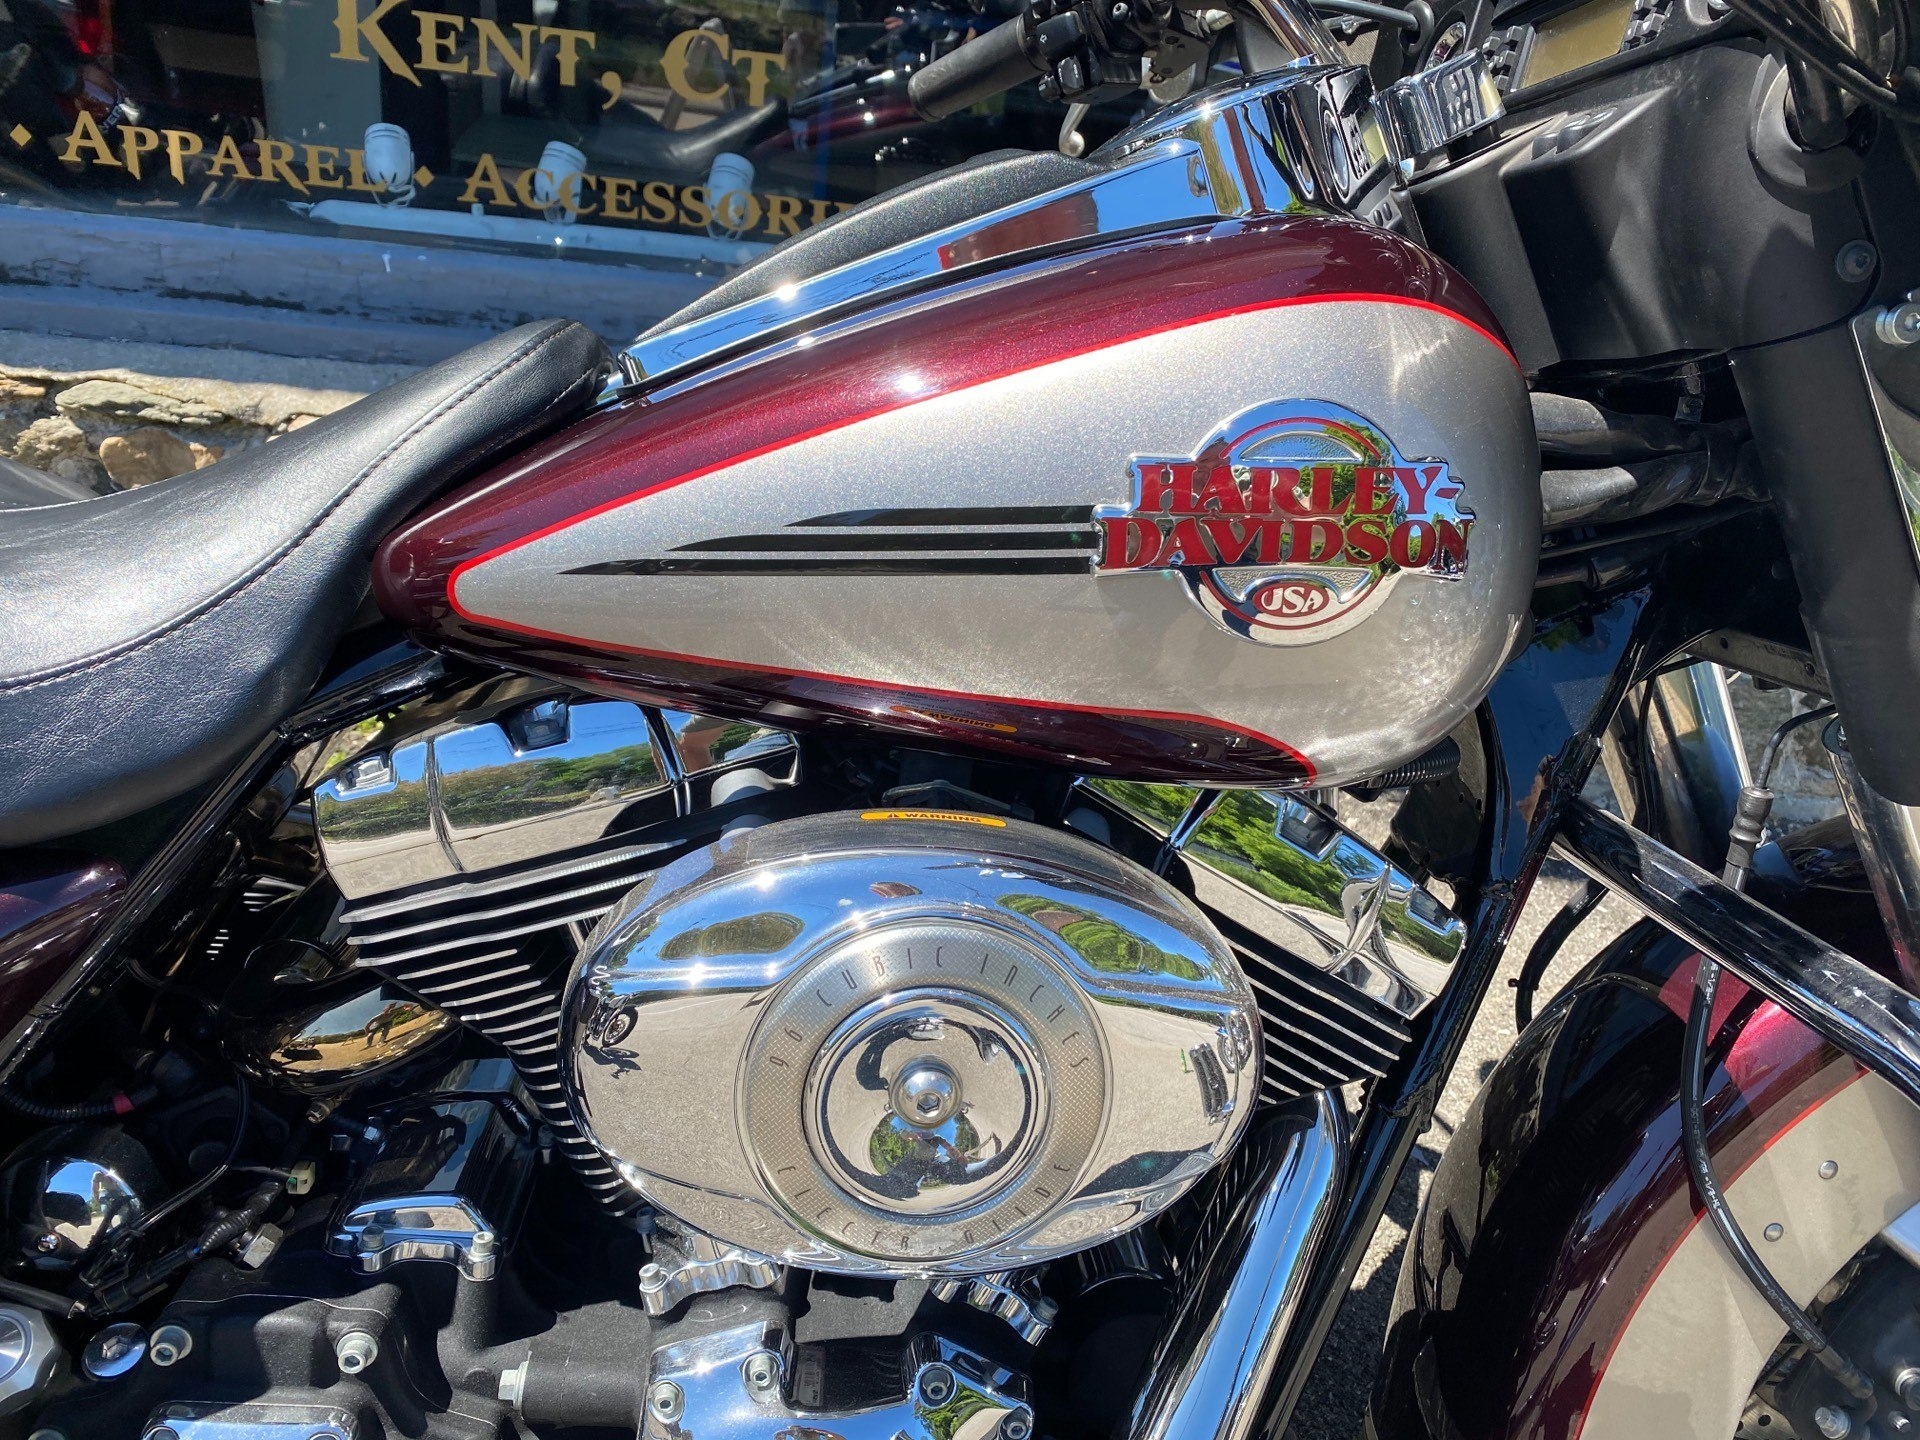 2007 Harley-Davidson Ultra Classic® Electra Glide® in Kent, Connecticut - Photo 4